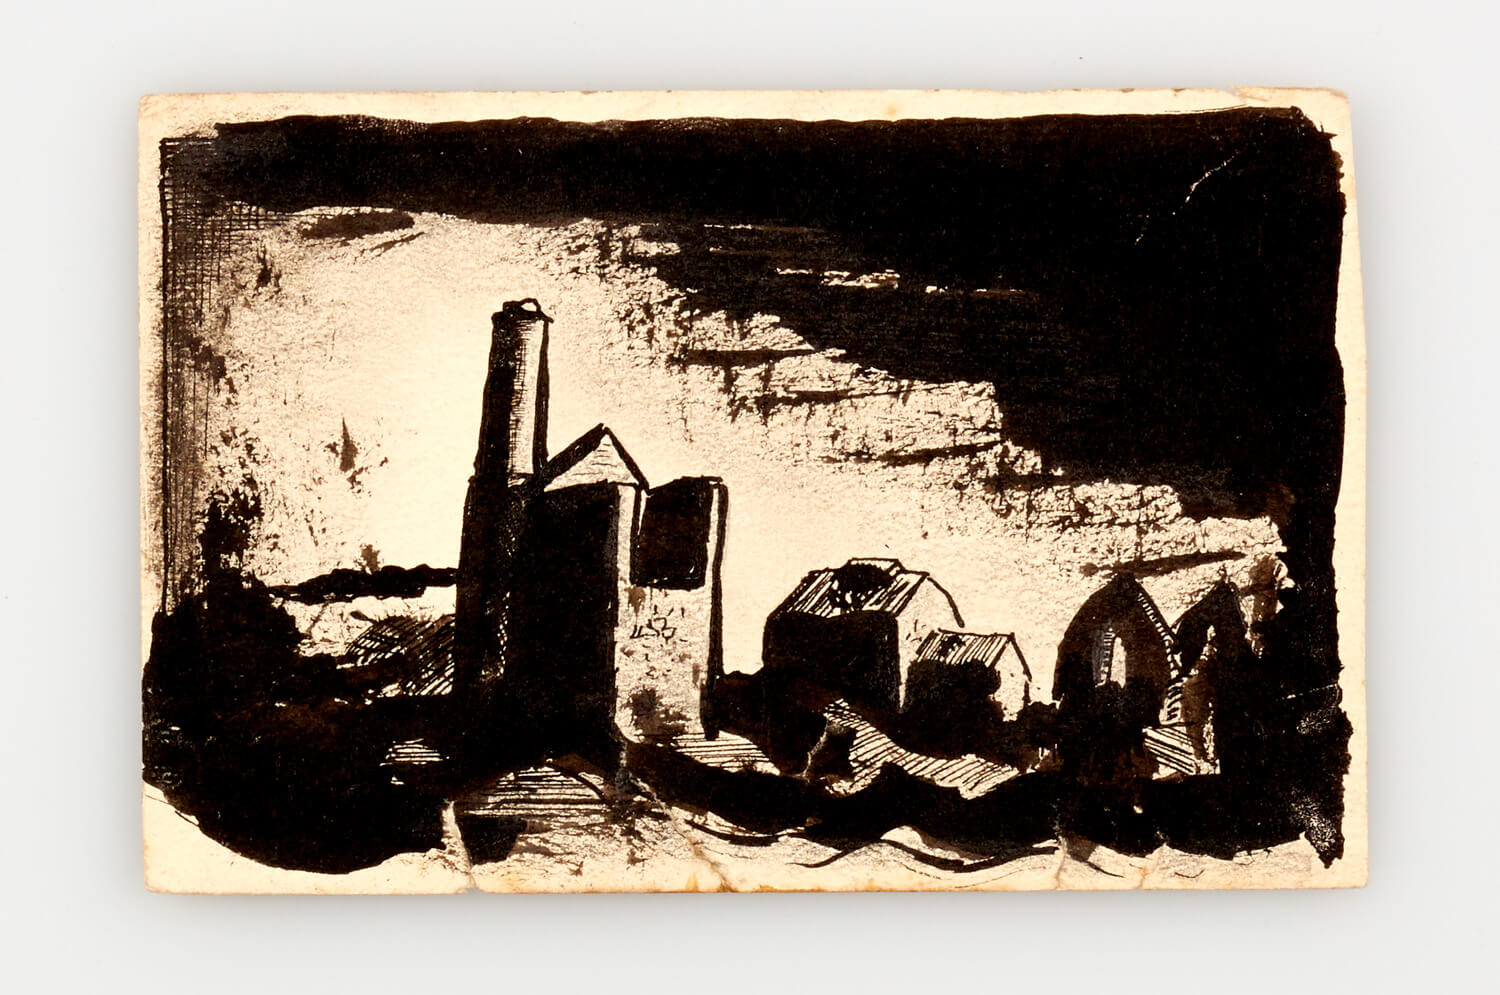 JB304 - Wheal Friendly, Cornwall - 1946 - 9 x 13.5 cm - Pen and ink and wash